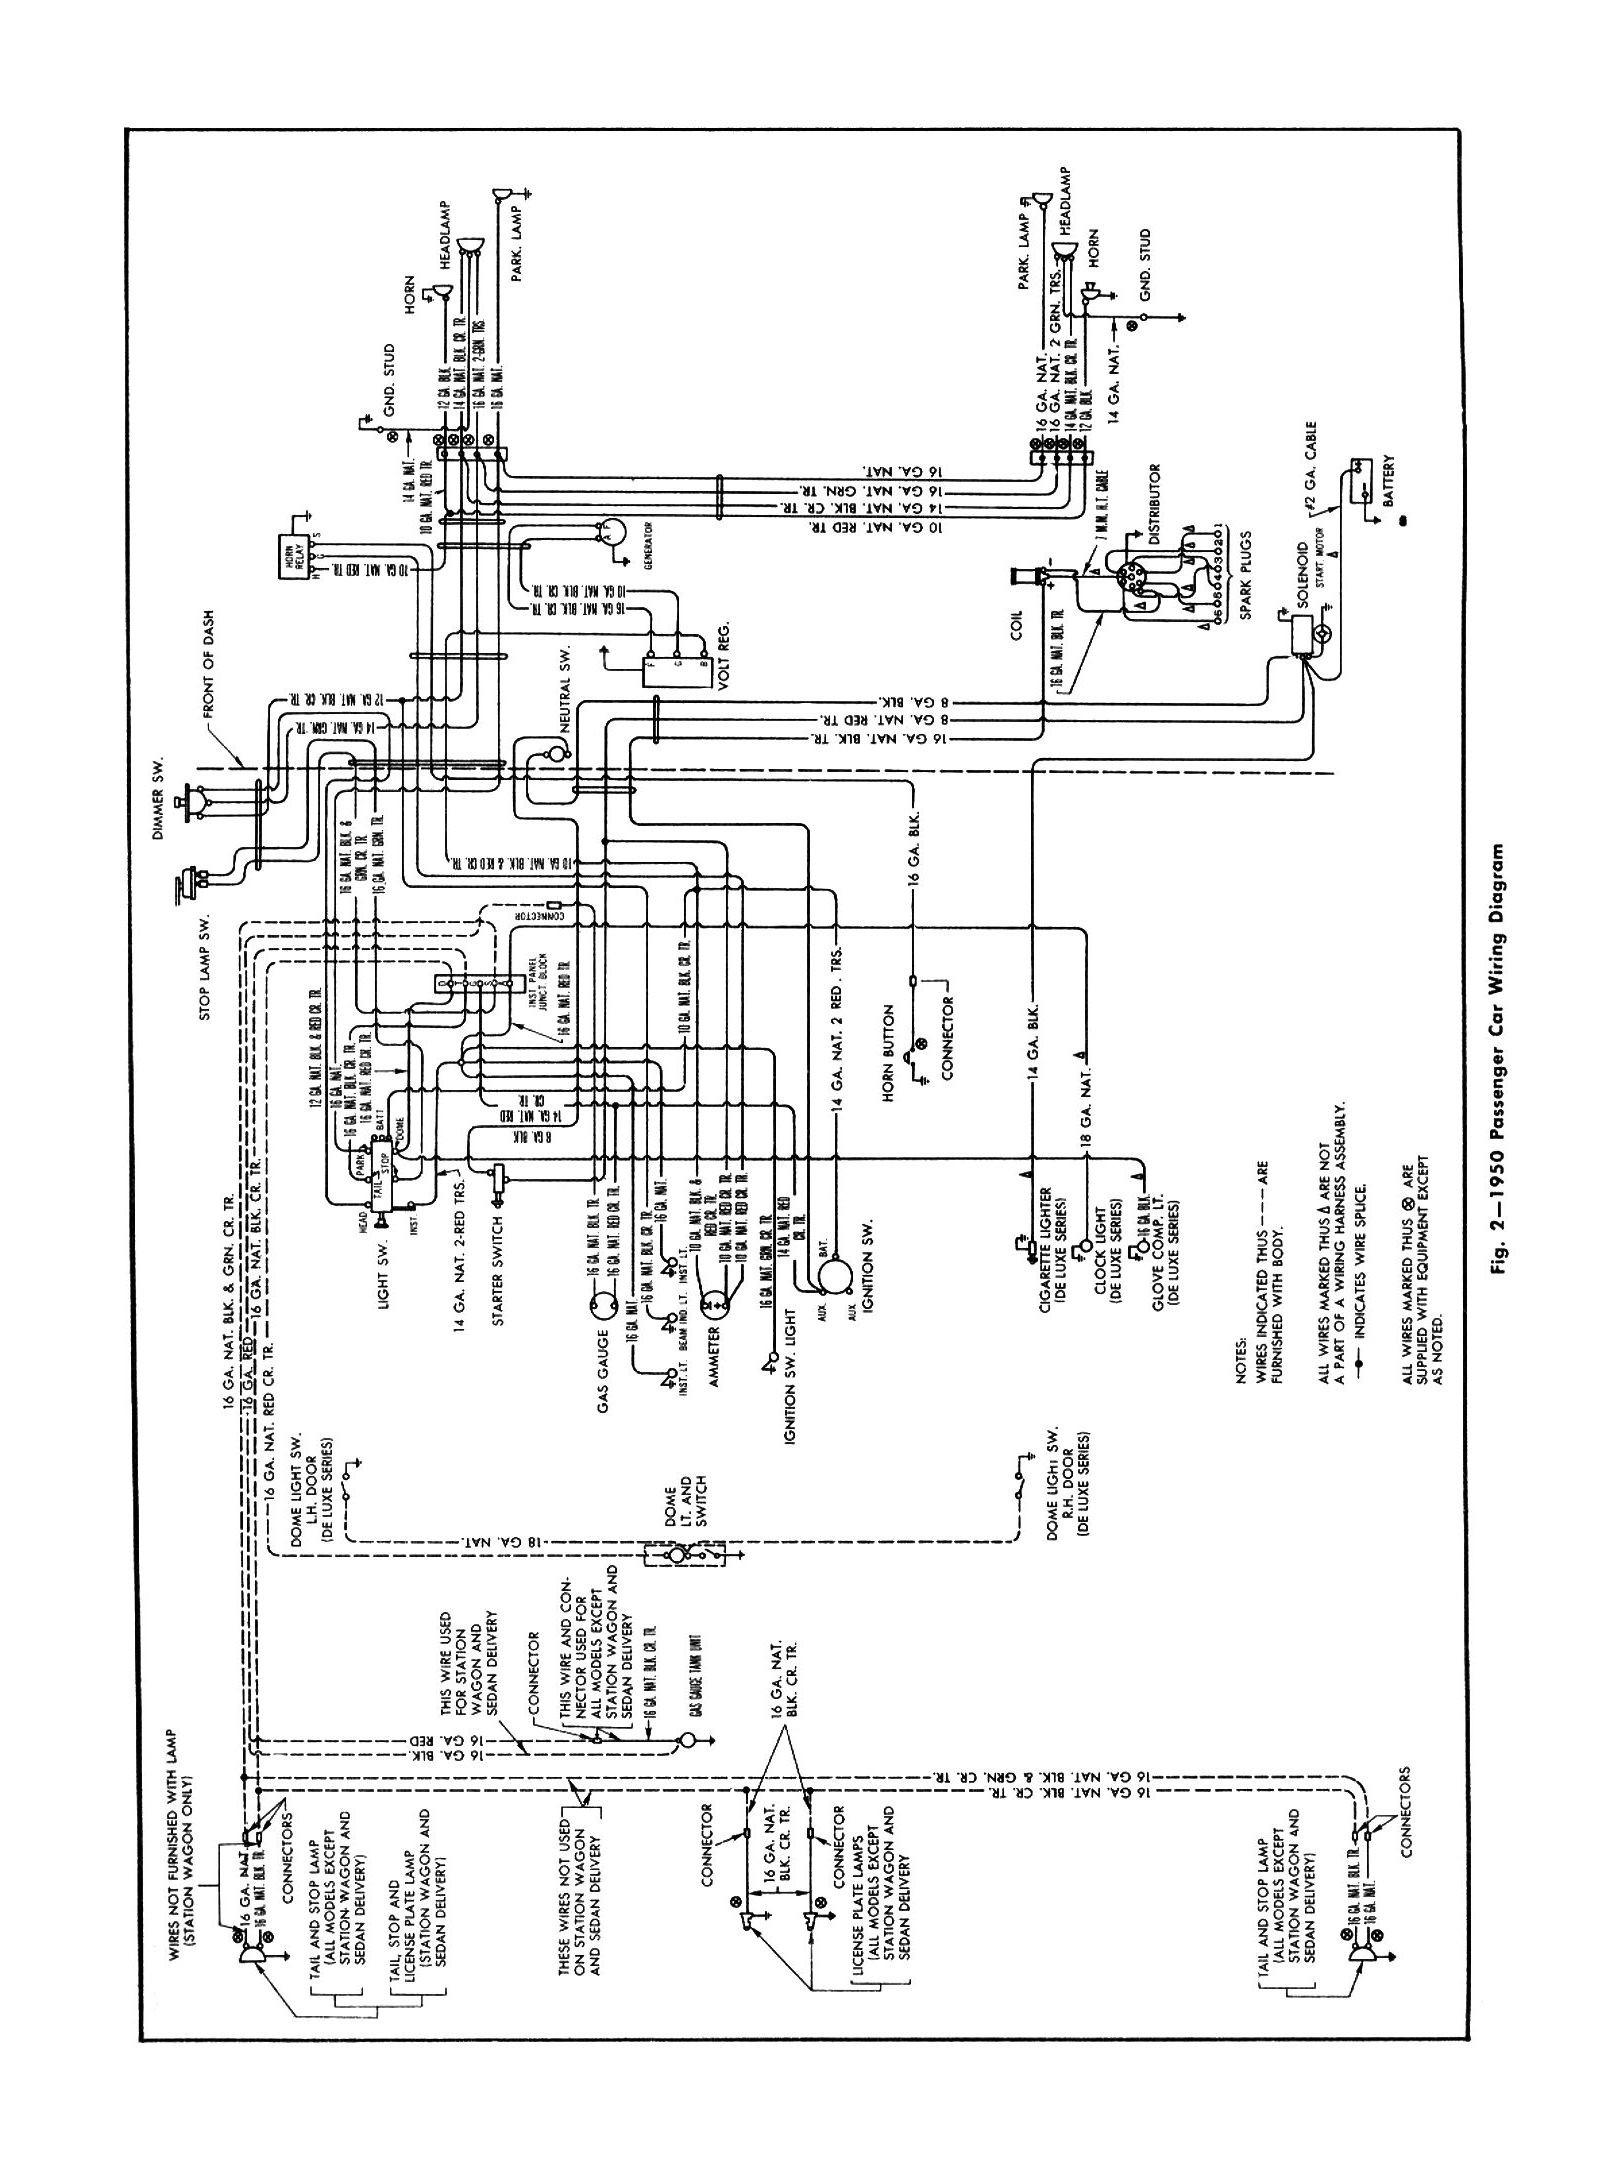 Chevy Wiring Diagrams Toyota Electrical Wiring Diagram 1937 Hudson Electrical  Wiring Diagram